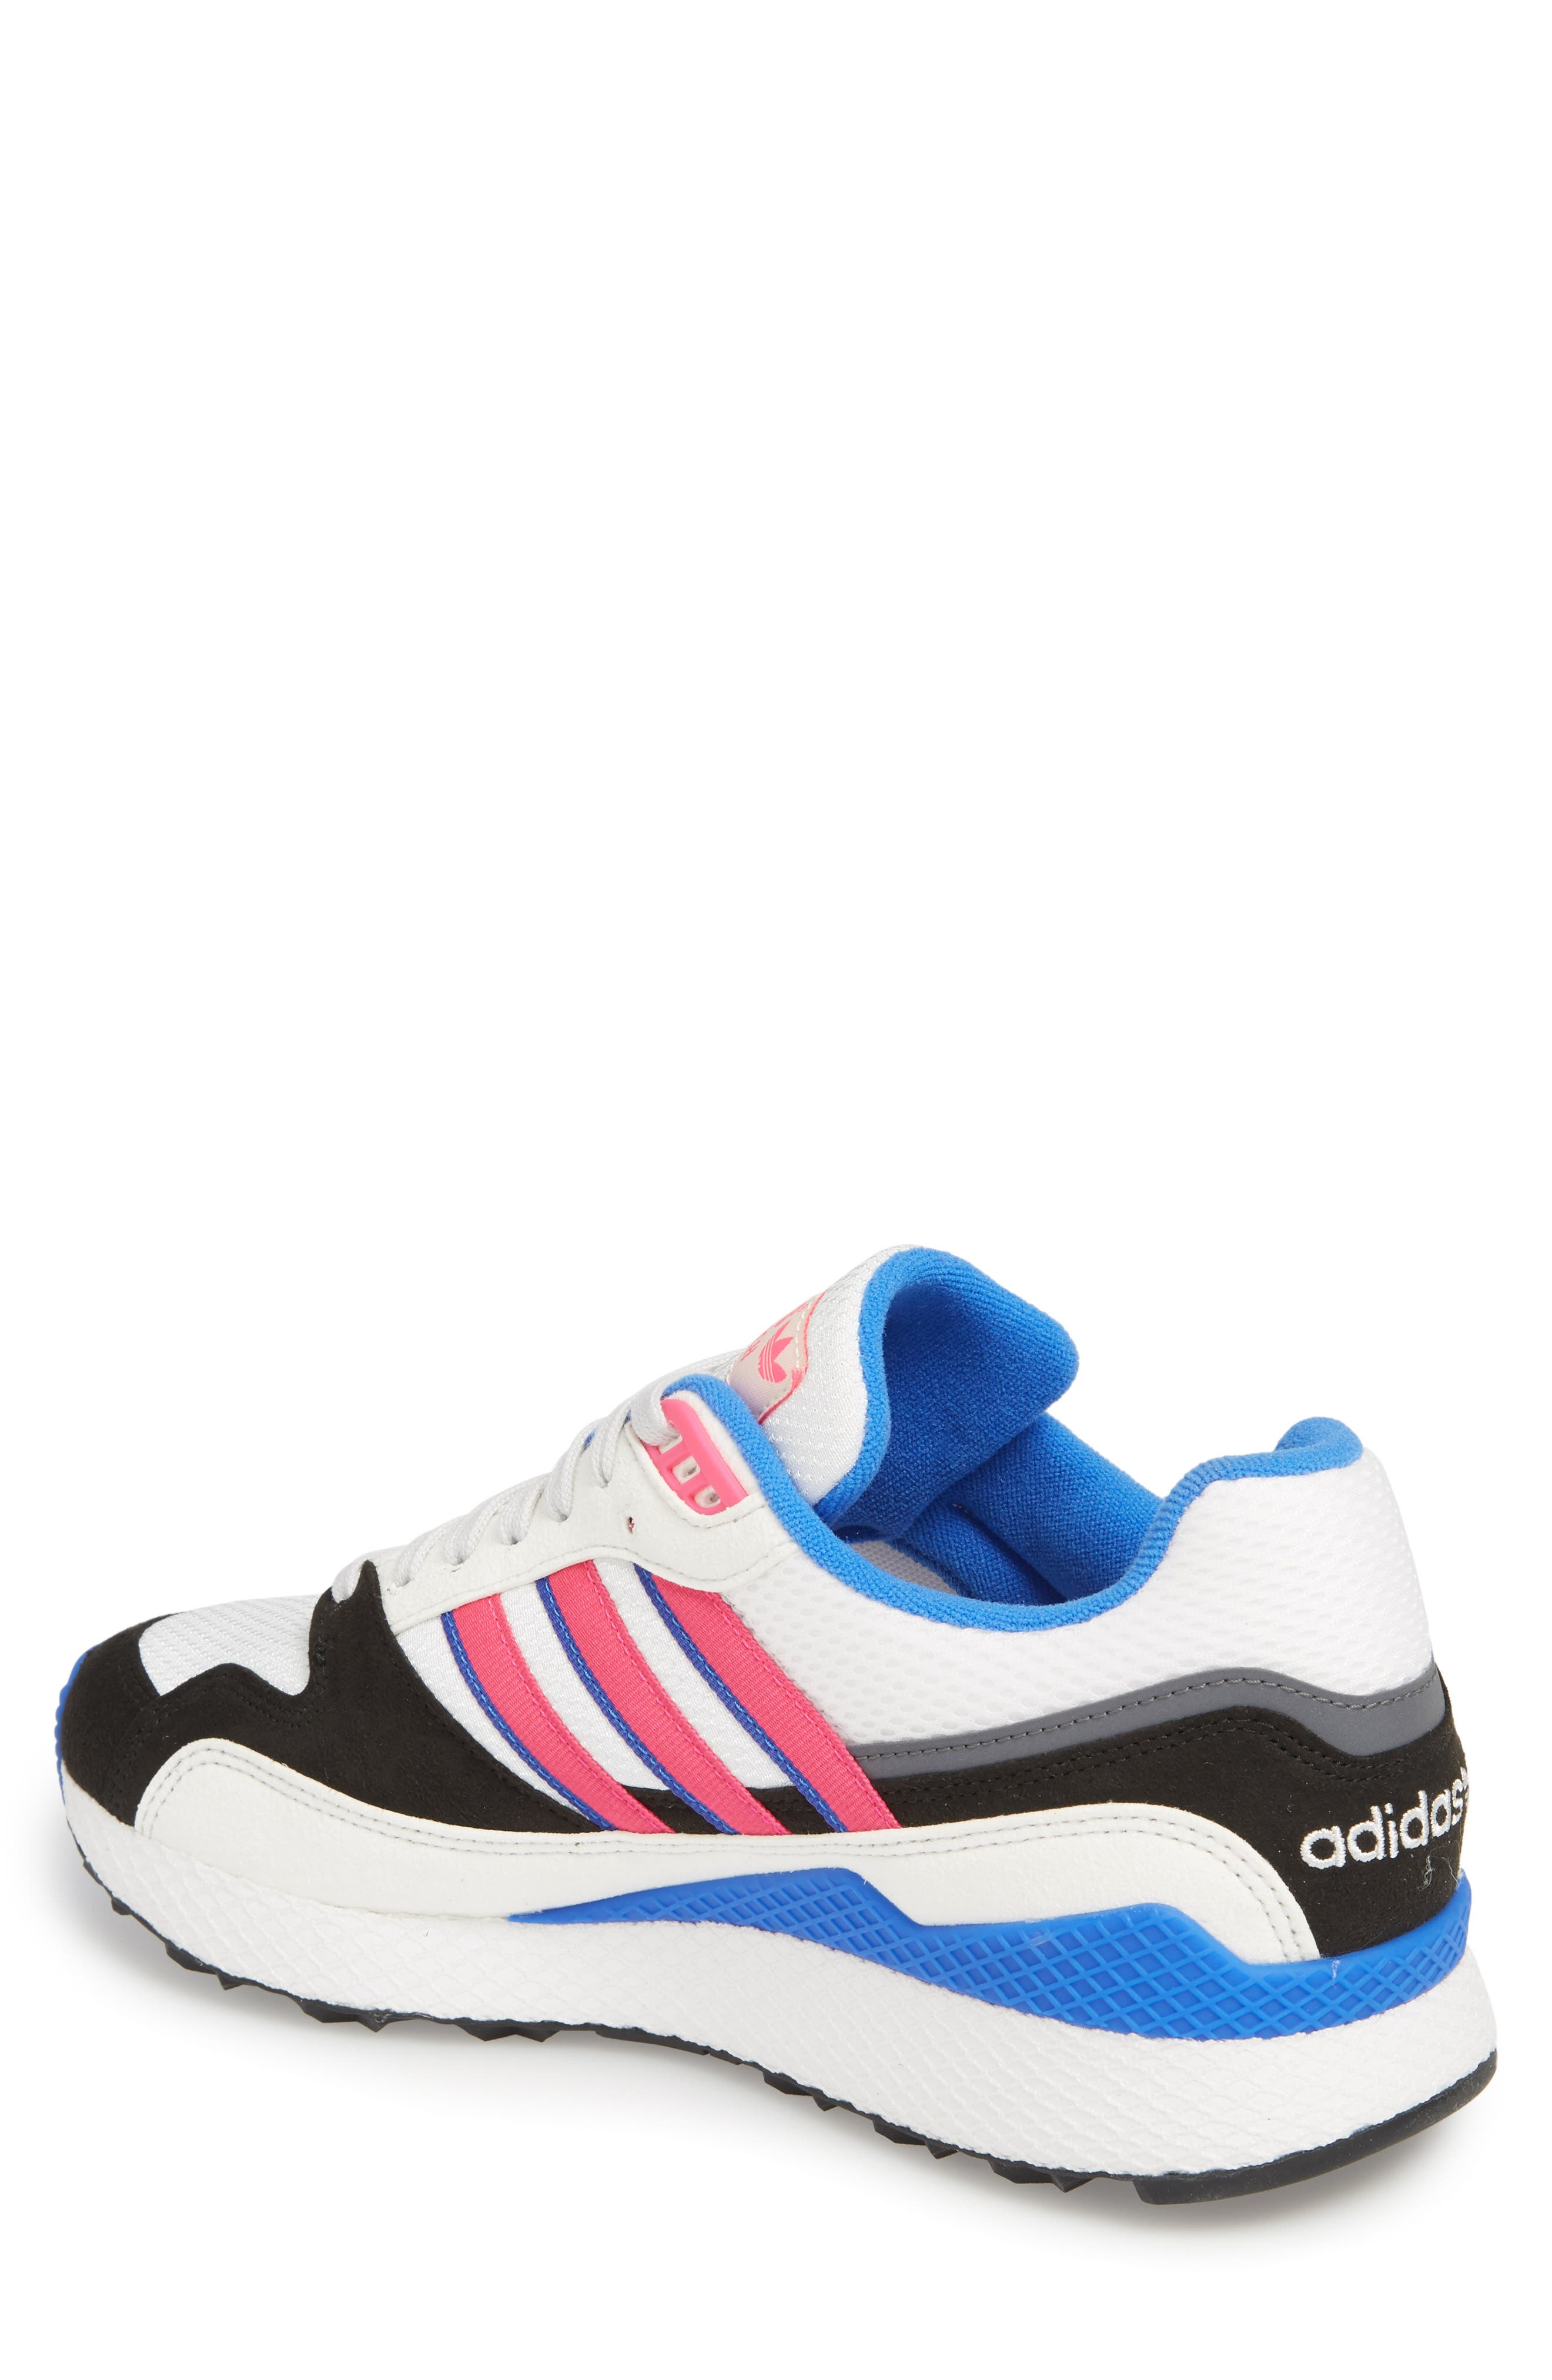 Forest Grove Ultra Tech Sneaker,                             Alternate thumbnail 2, color,                             Crystal White/ Pink/ Black